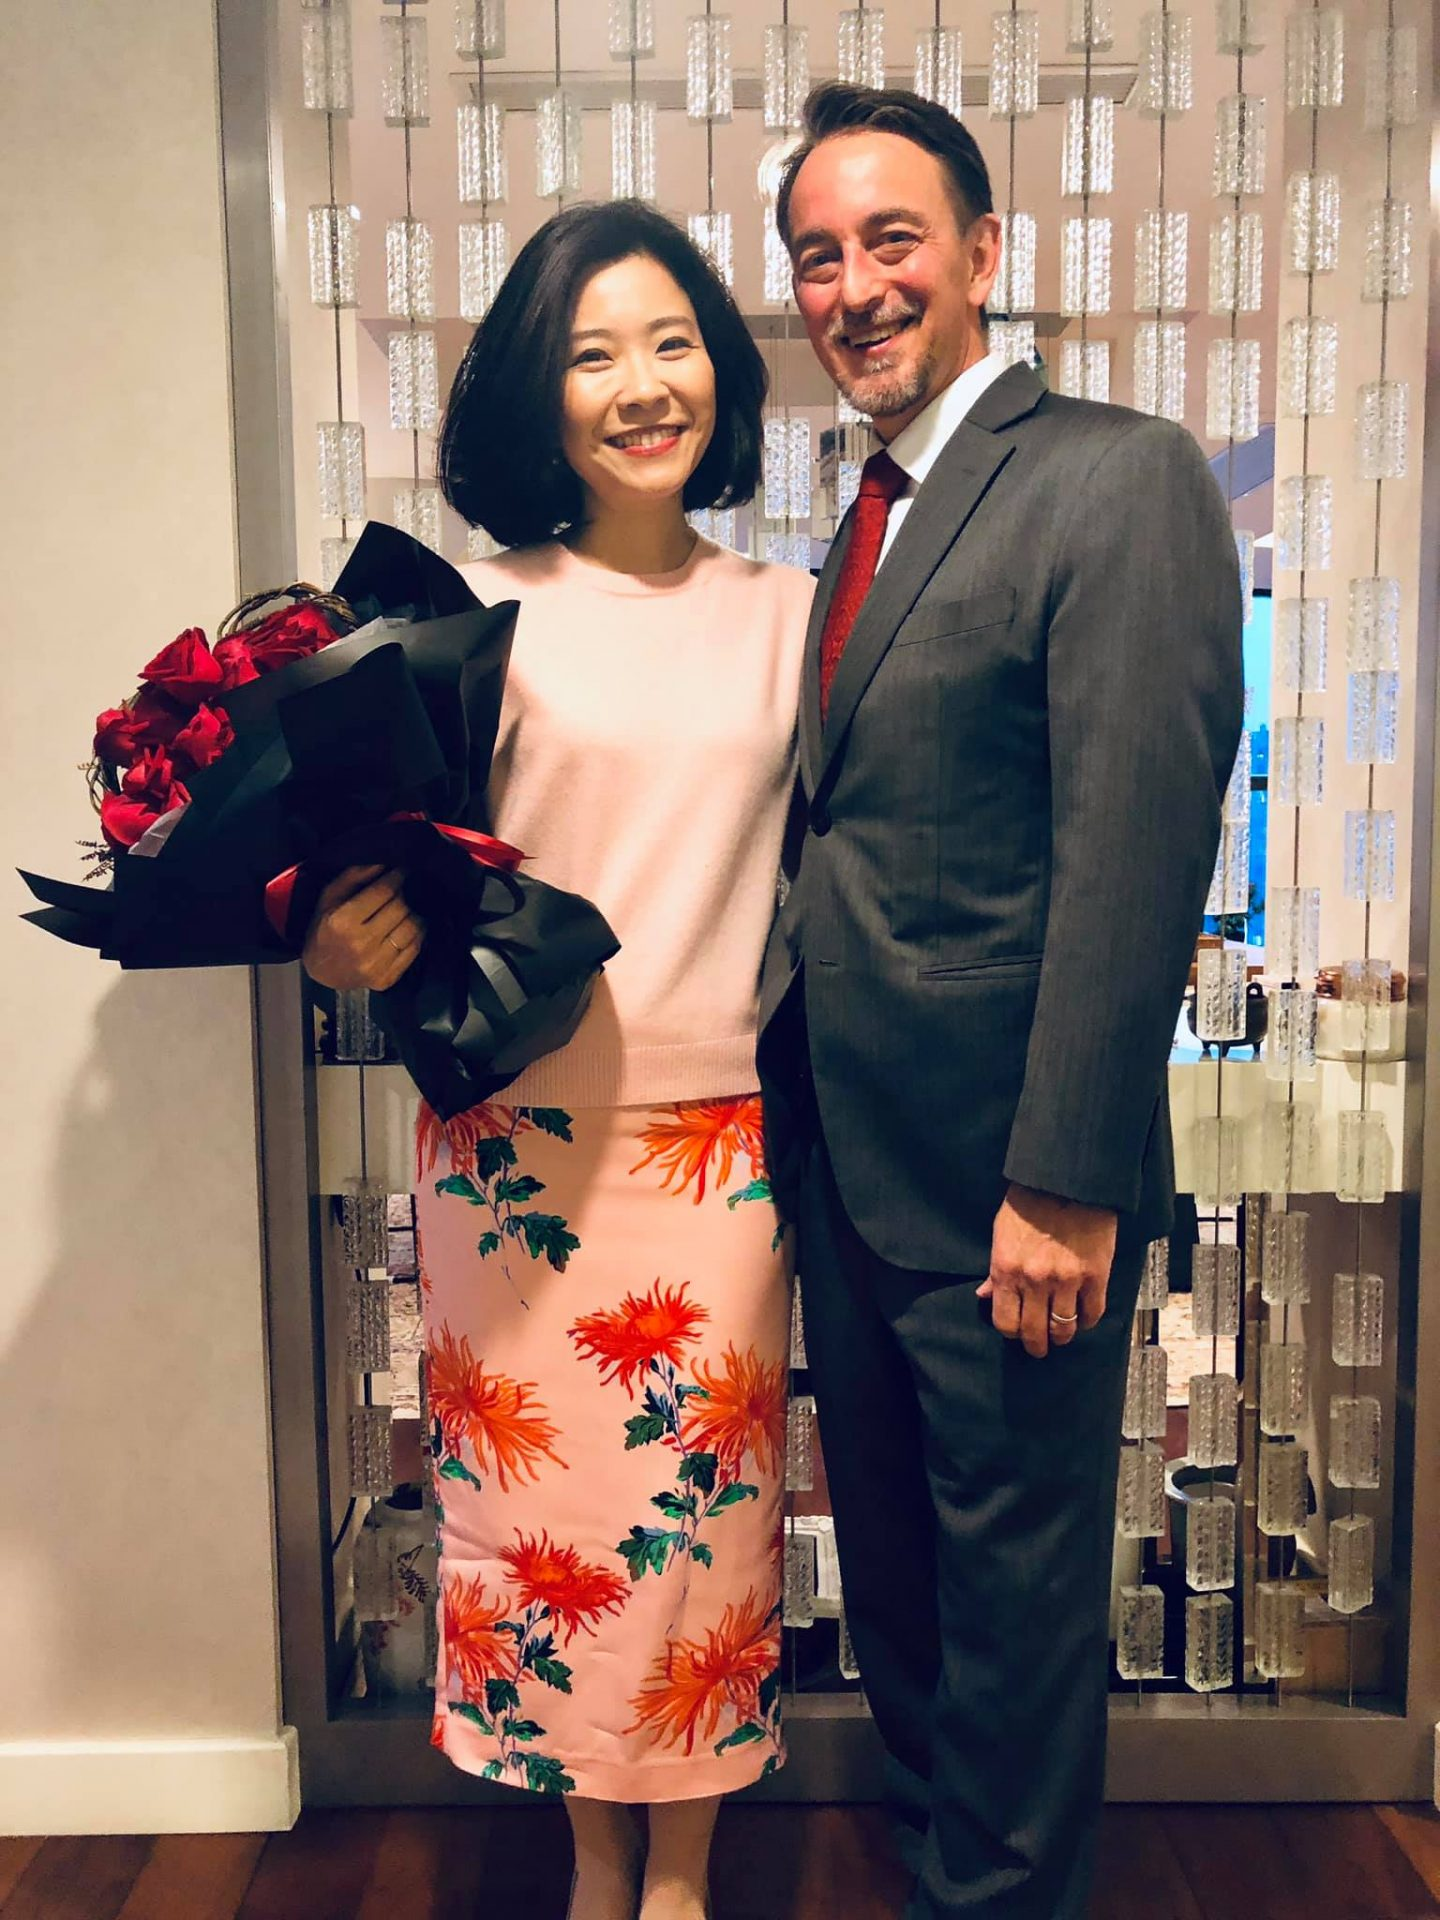 Chuang Tzu-i with her husband, U.S. consul general Jim Mullinax. (Image: Facebook)